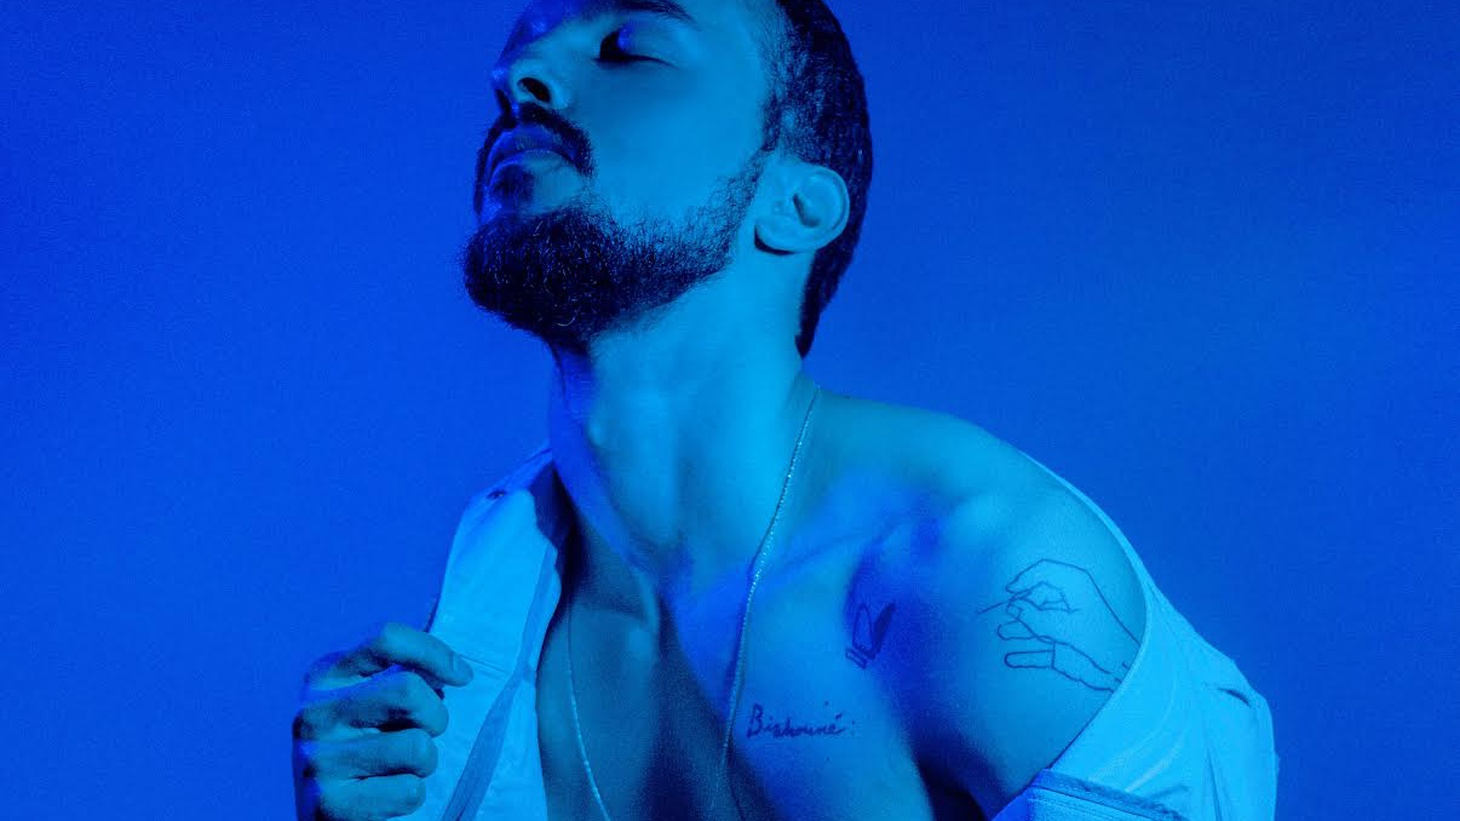 """Gabriel Garzón-Montano quietly released one of the best albums of 2017. """"Golden Wings"""" is a new song that features Montano on every note and instrument. Catch him live as part of LAMC's Central Park SummerStage Show in NYC on July 11."""